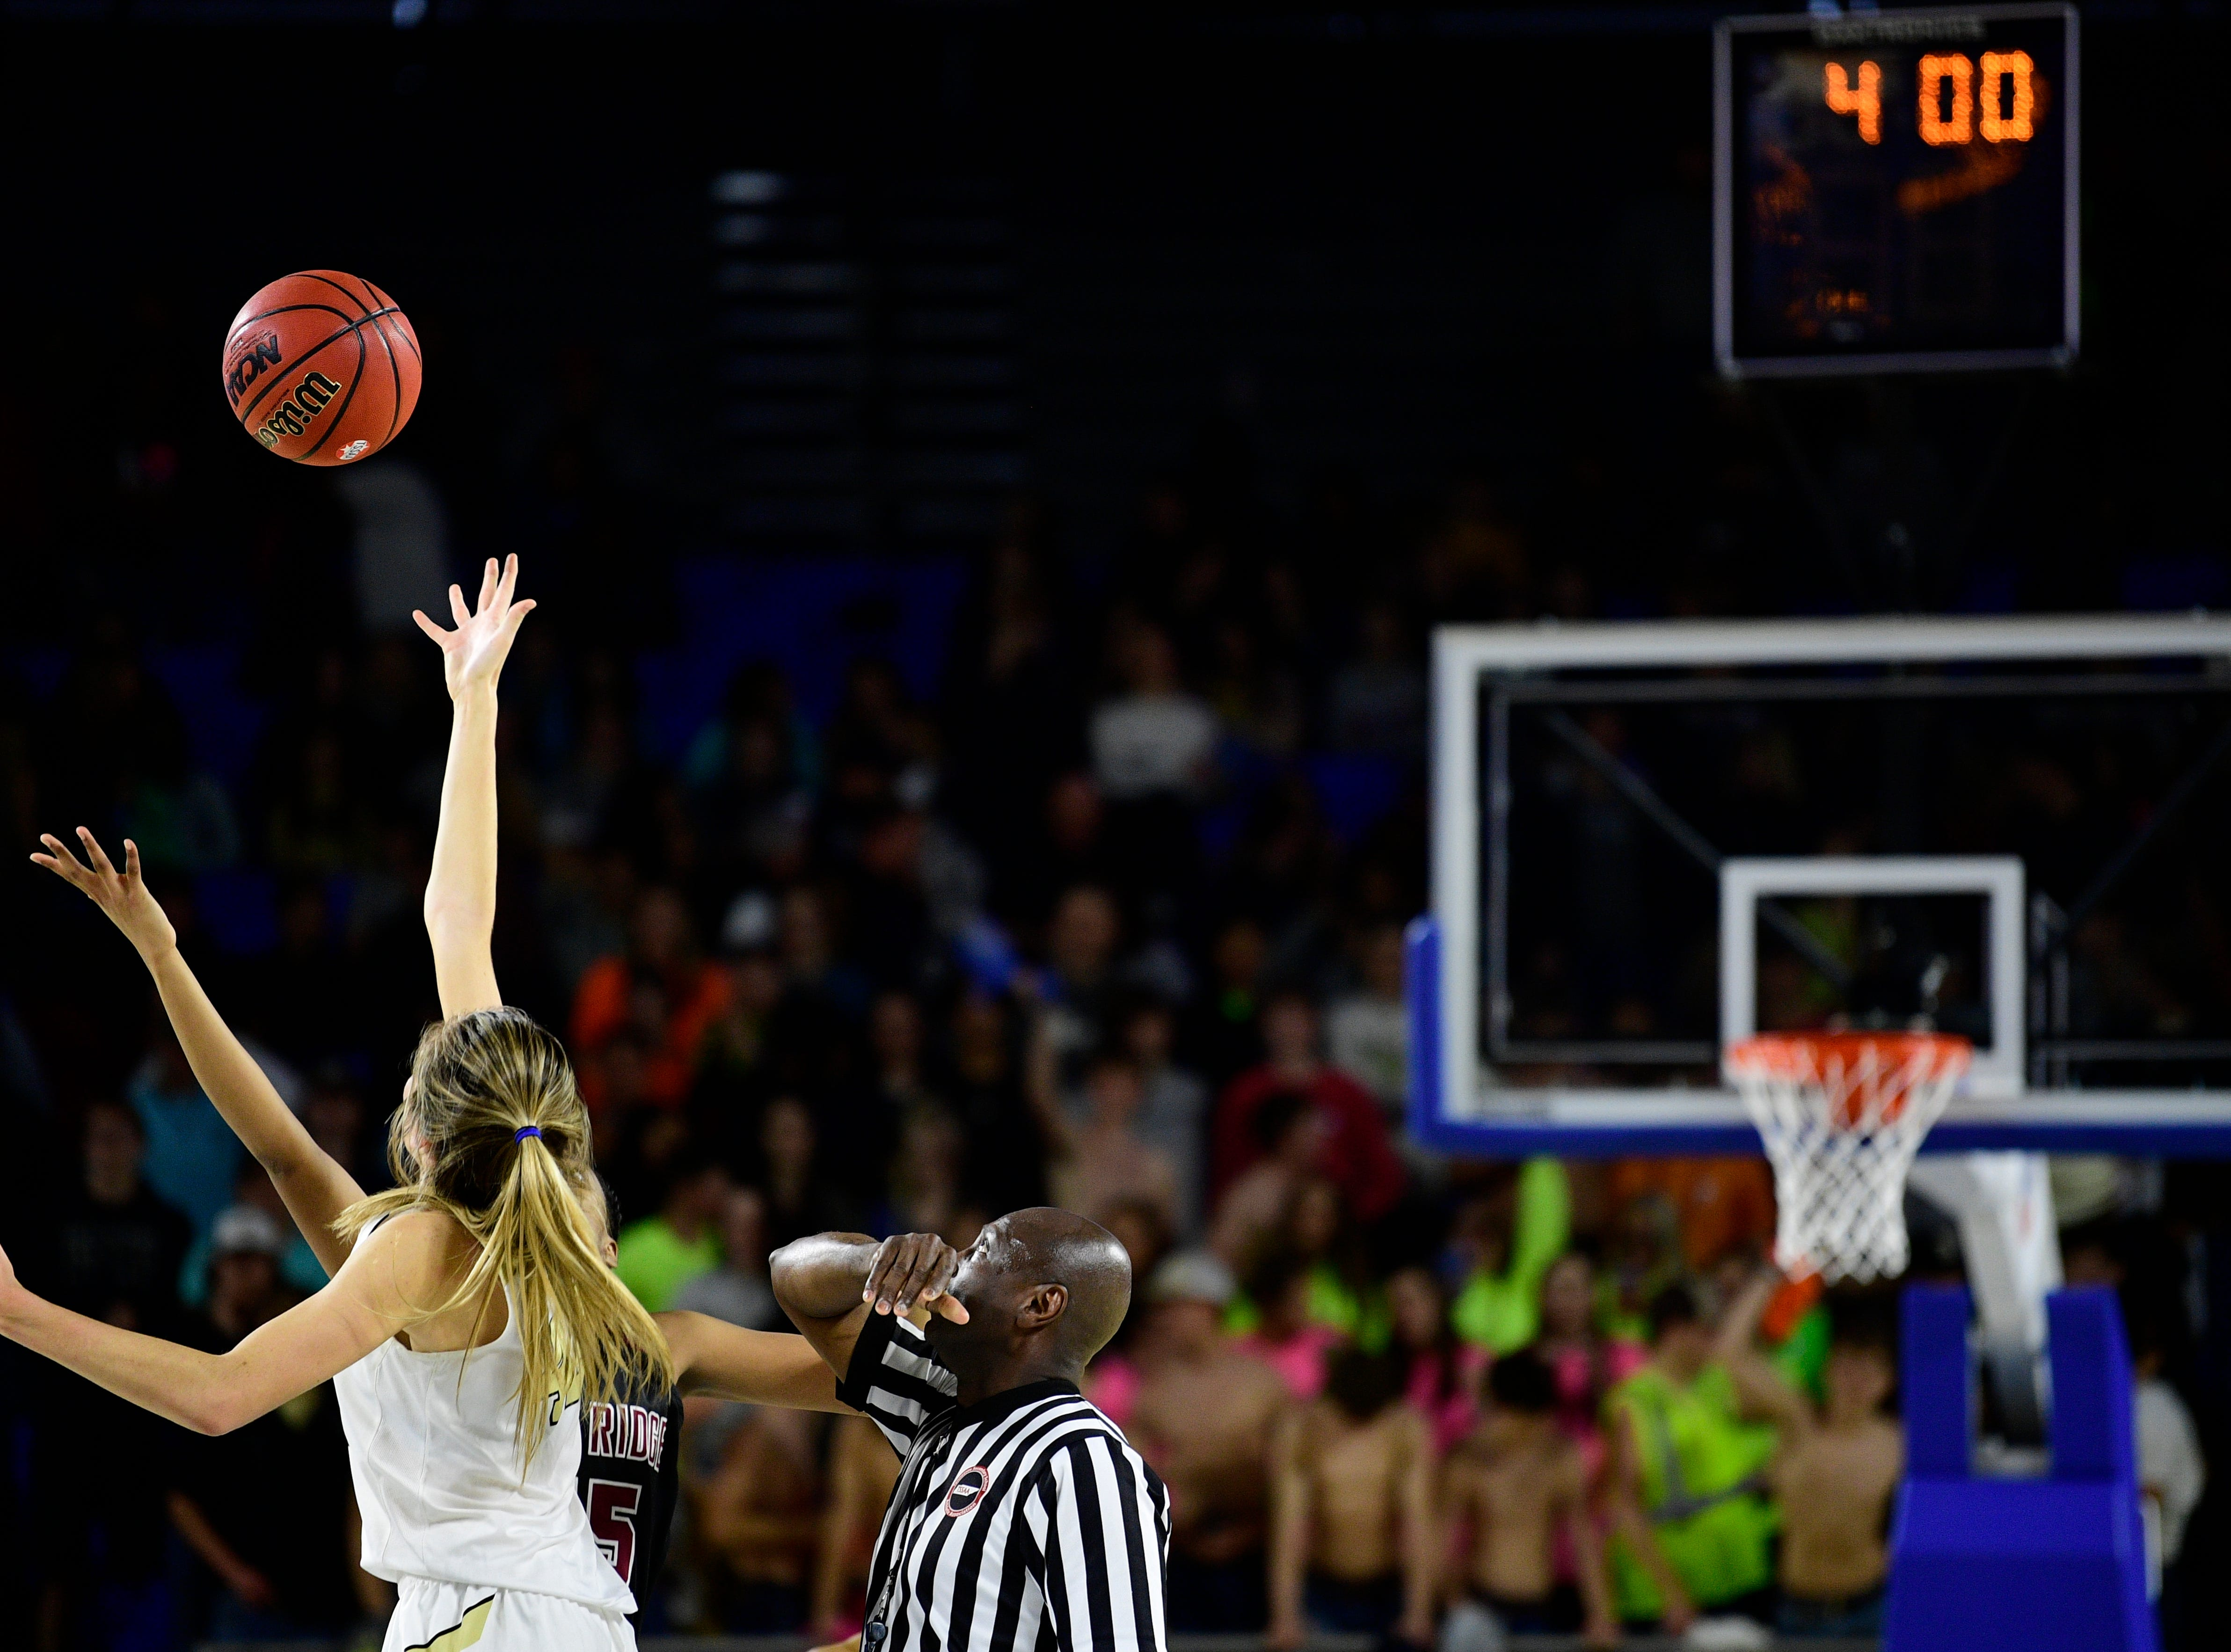 Bradley Central's Anna Walker (42) and Oak Ridge's Raja Eckles (15) tip off in overtime during a game between Oak Ridge and Bradley Central at the TSSAA girls state tournament at the Murphy Center in Murfreesboro, Tennessee on Friday, March 8, 2019.